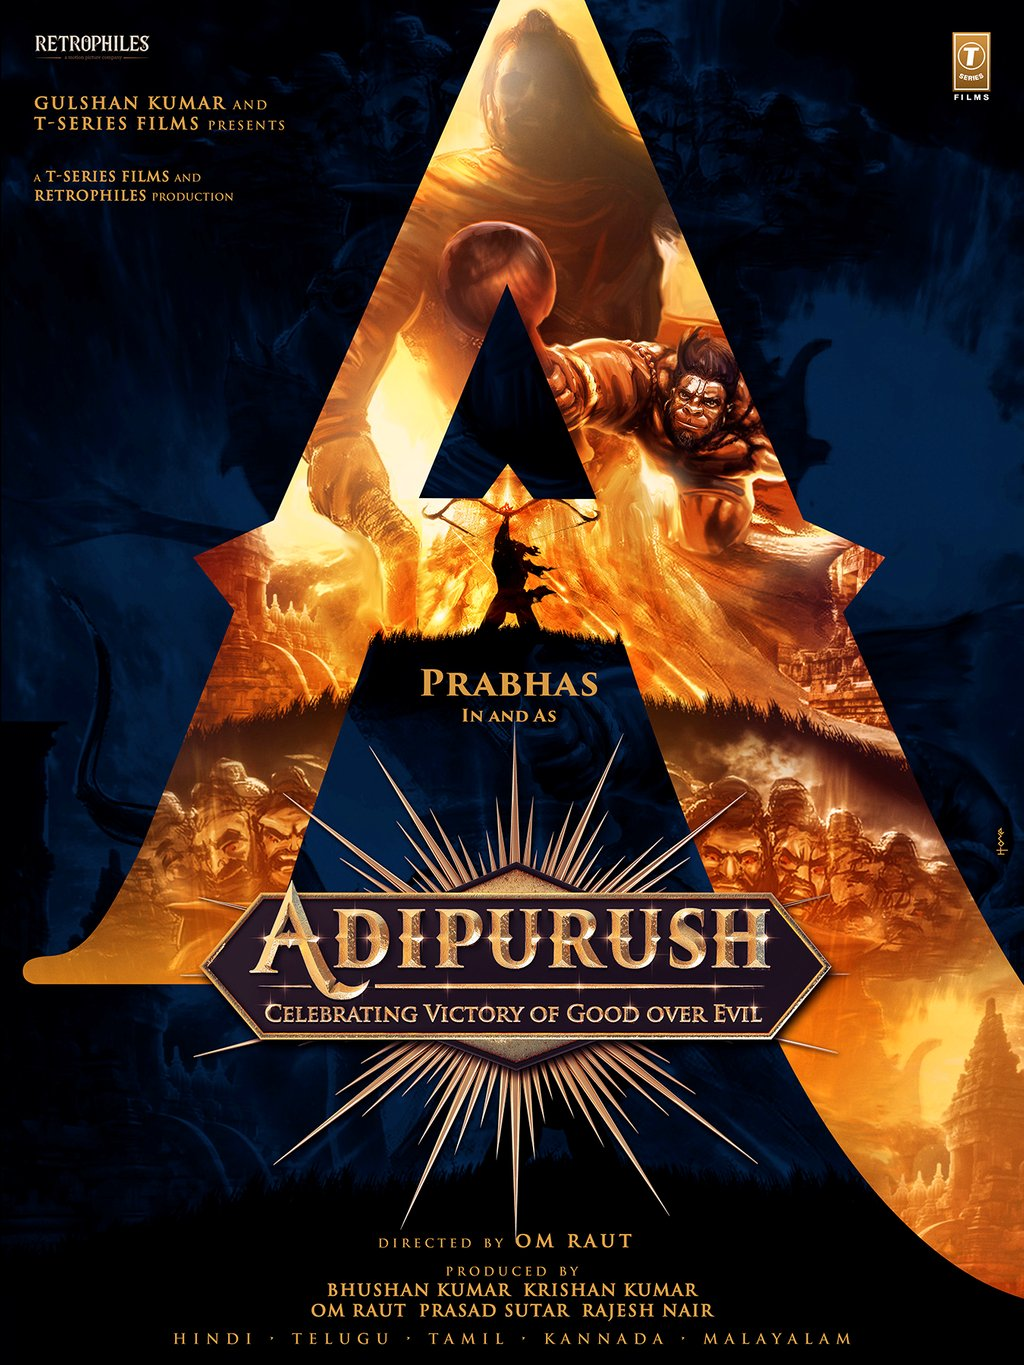 Adipurush Movie Release Date, Cast, Story, Budget, Plot, Trailer and Everything Else